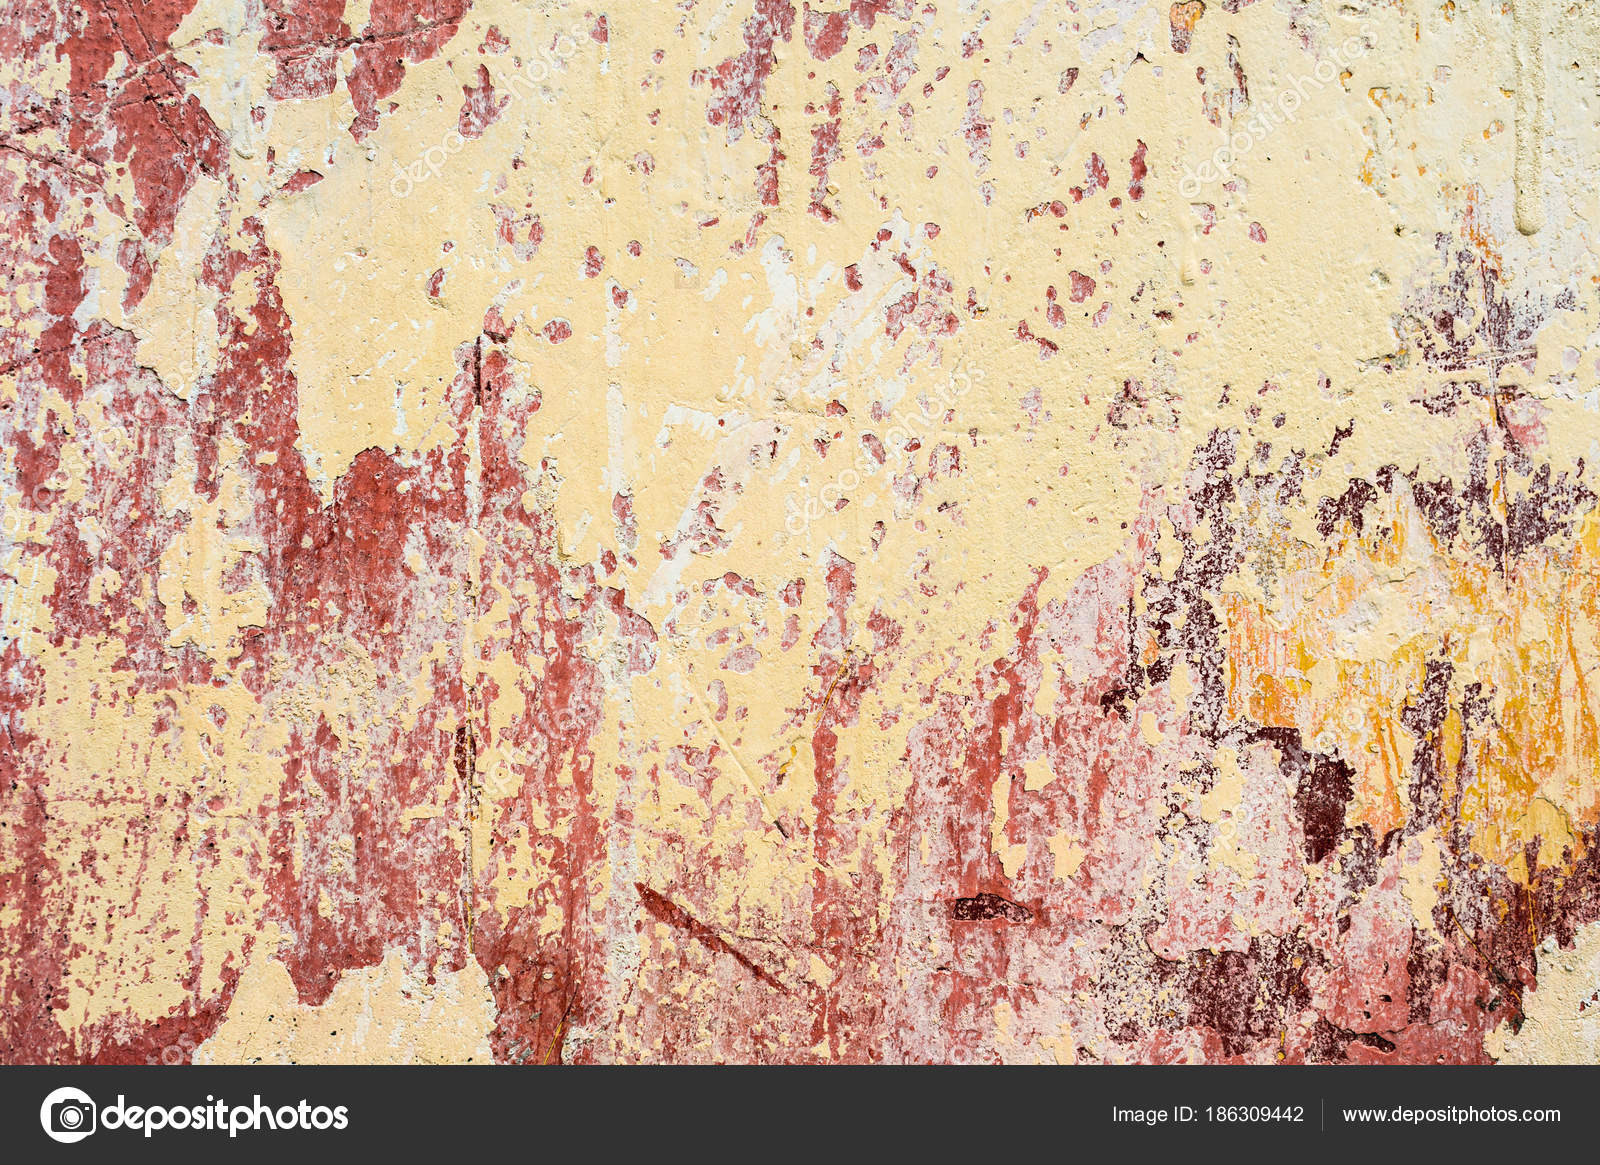 Textured background of multi layer flaking paint on the wall Mixing